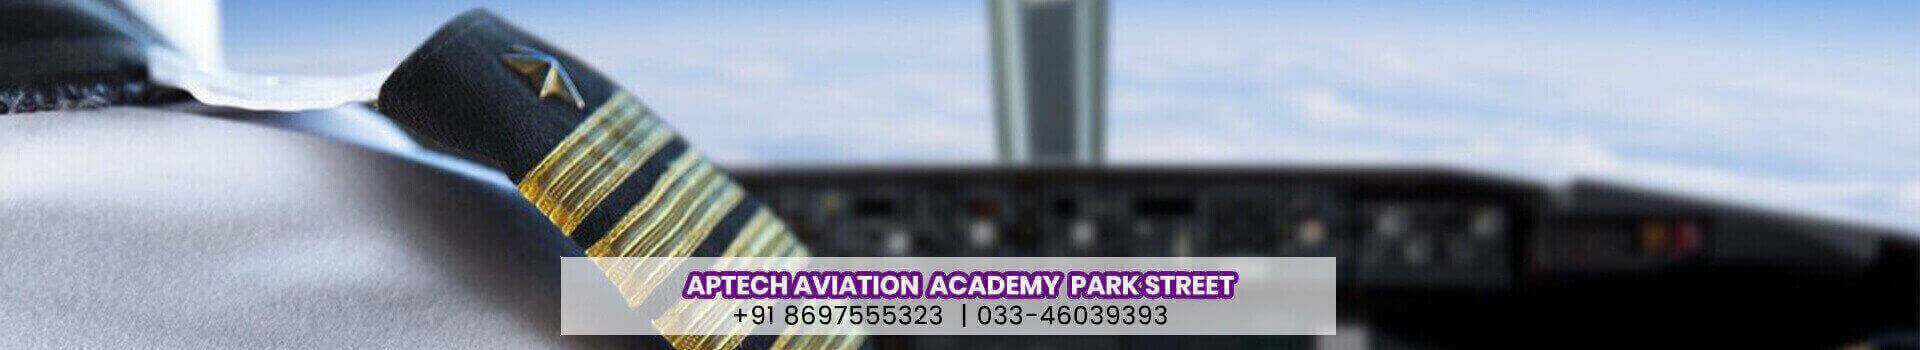 Aptech aviation institute park street